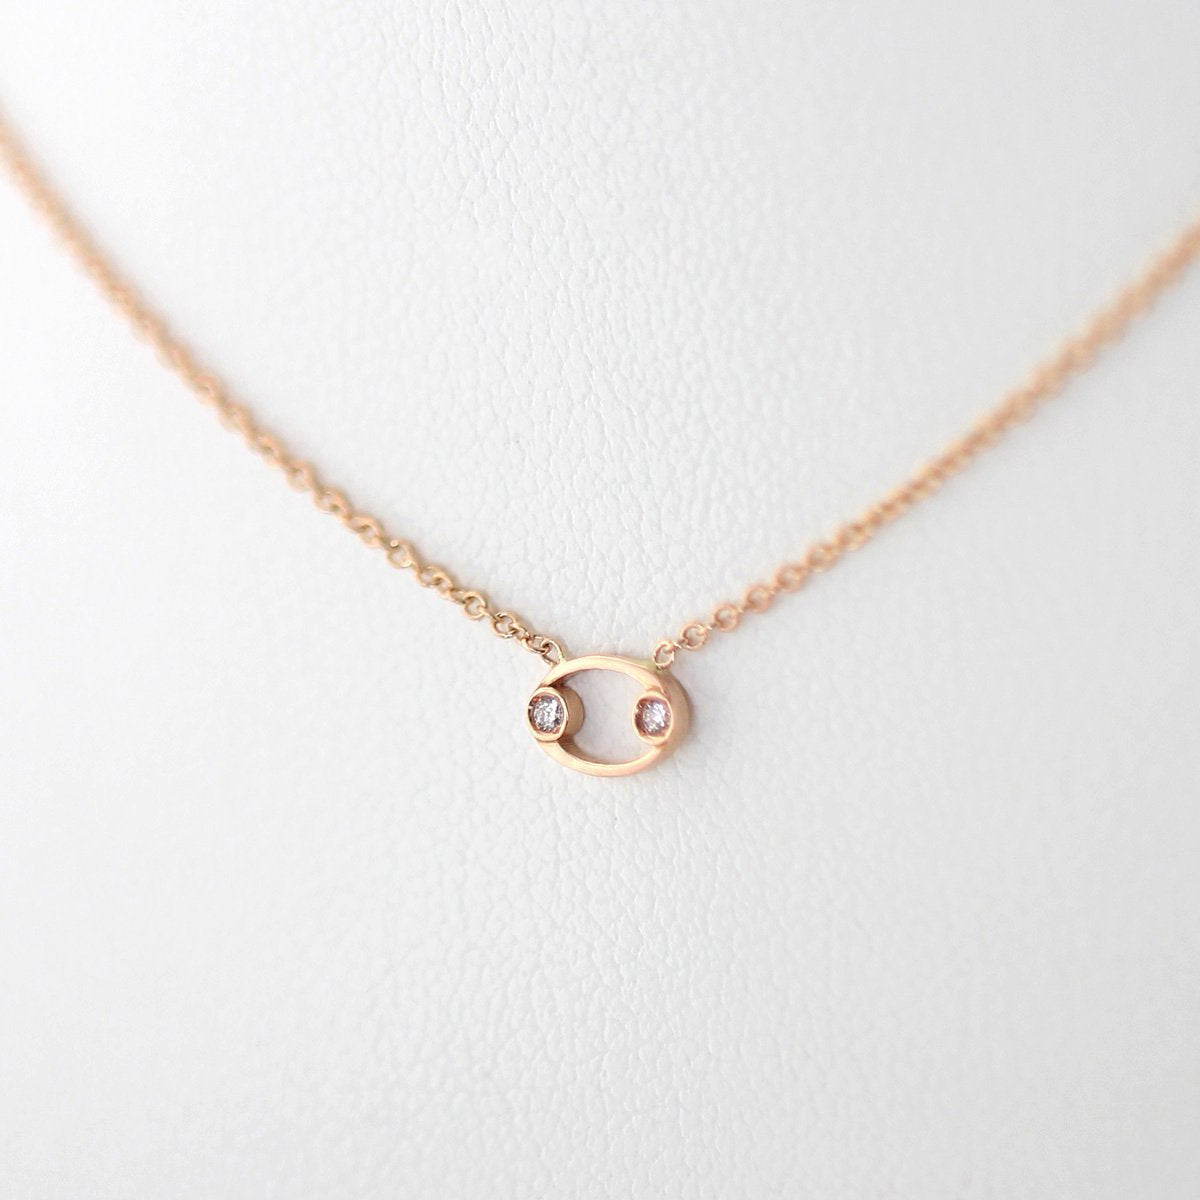 Cancer Zodiac Sign Diamond Necklace